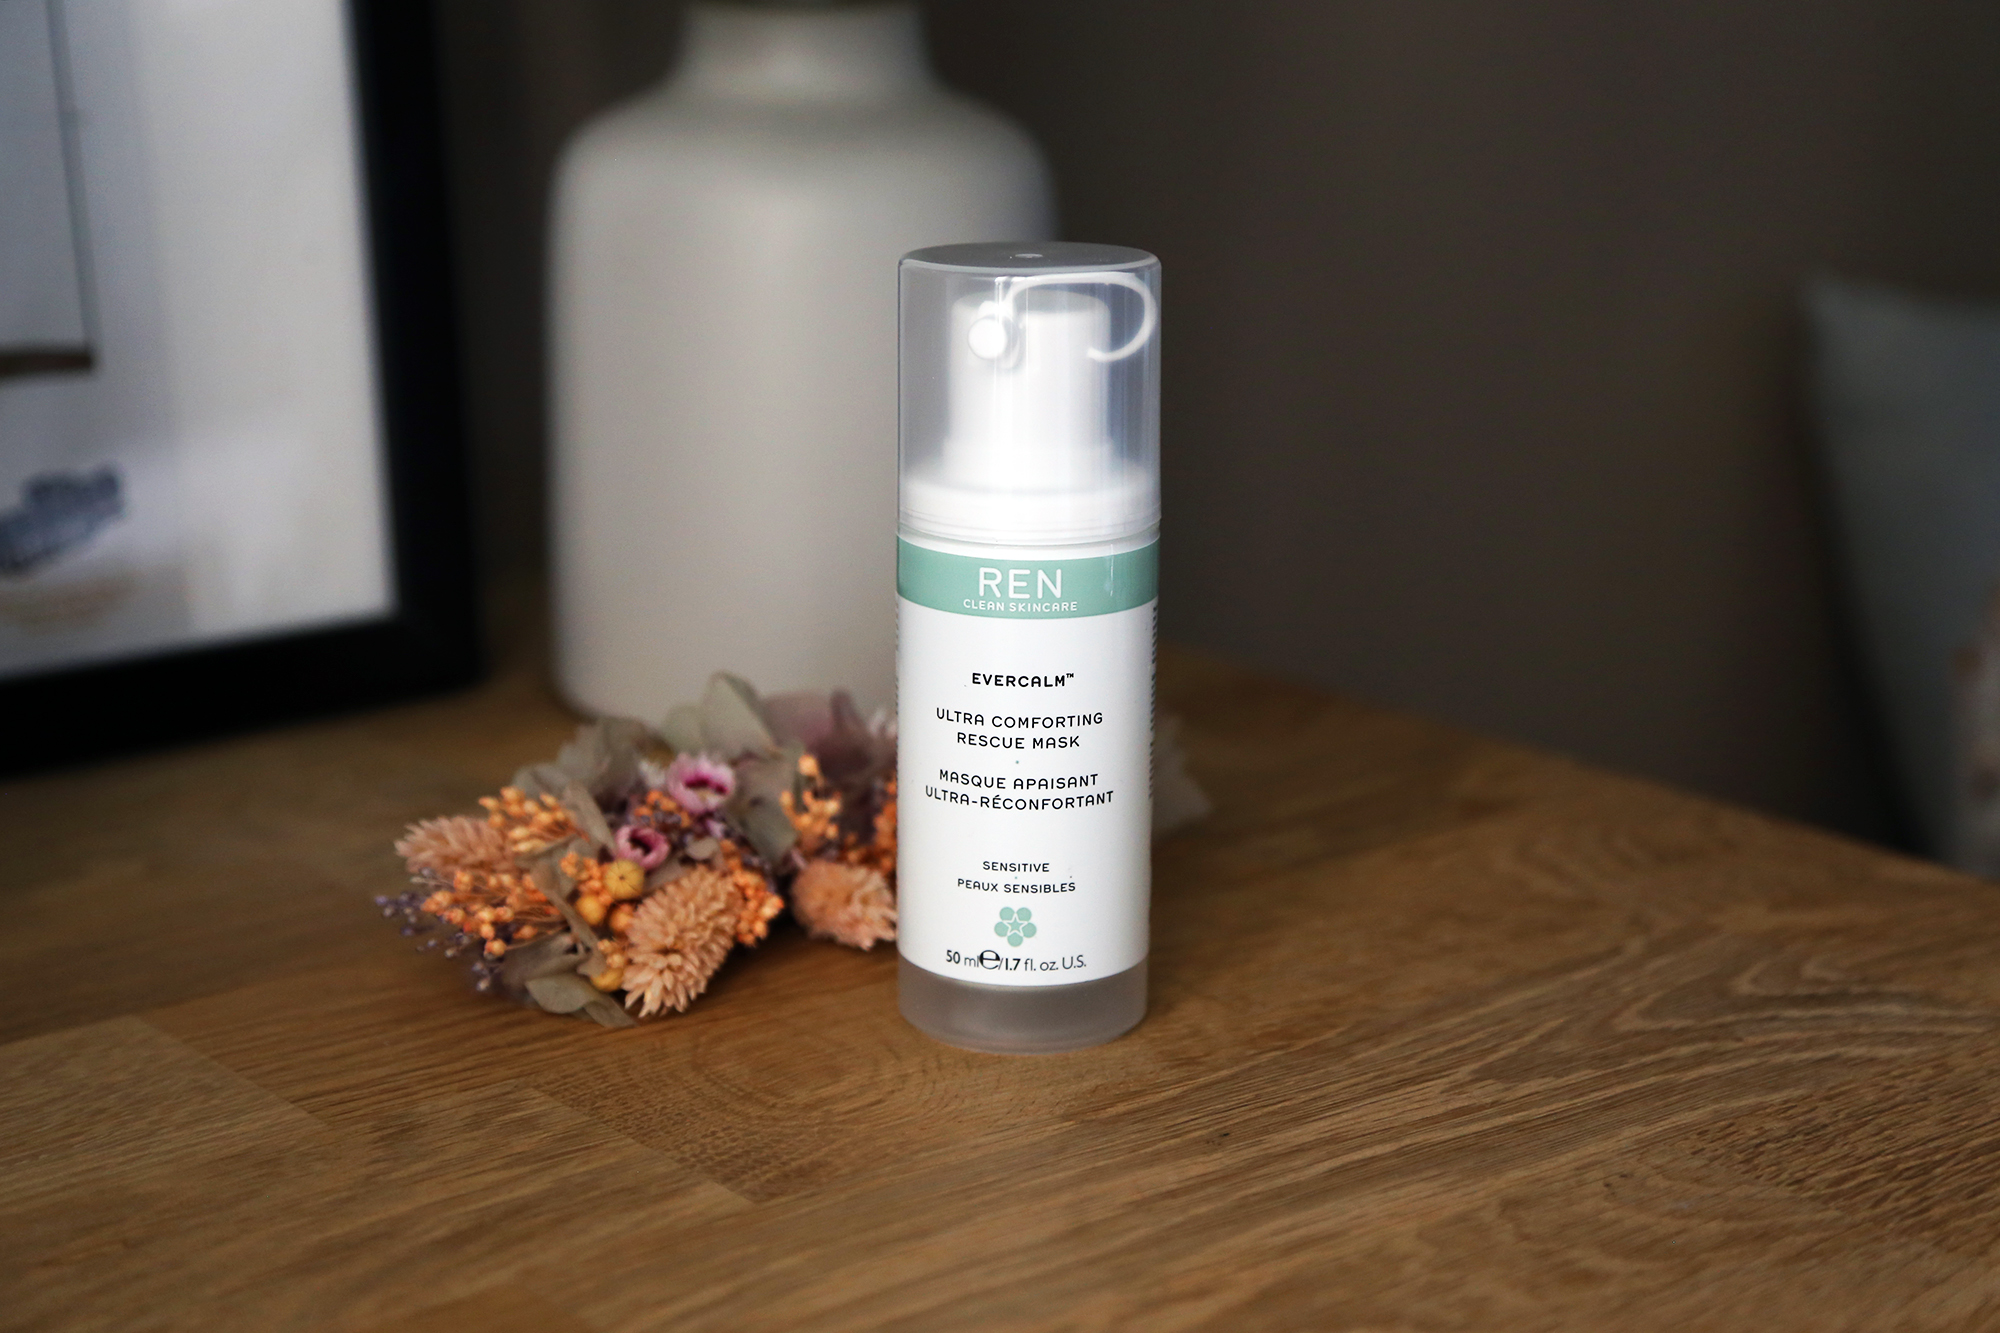 REN Skincare clean Evercalm masque apaisant réconfortant